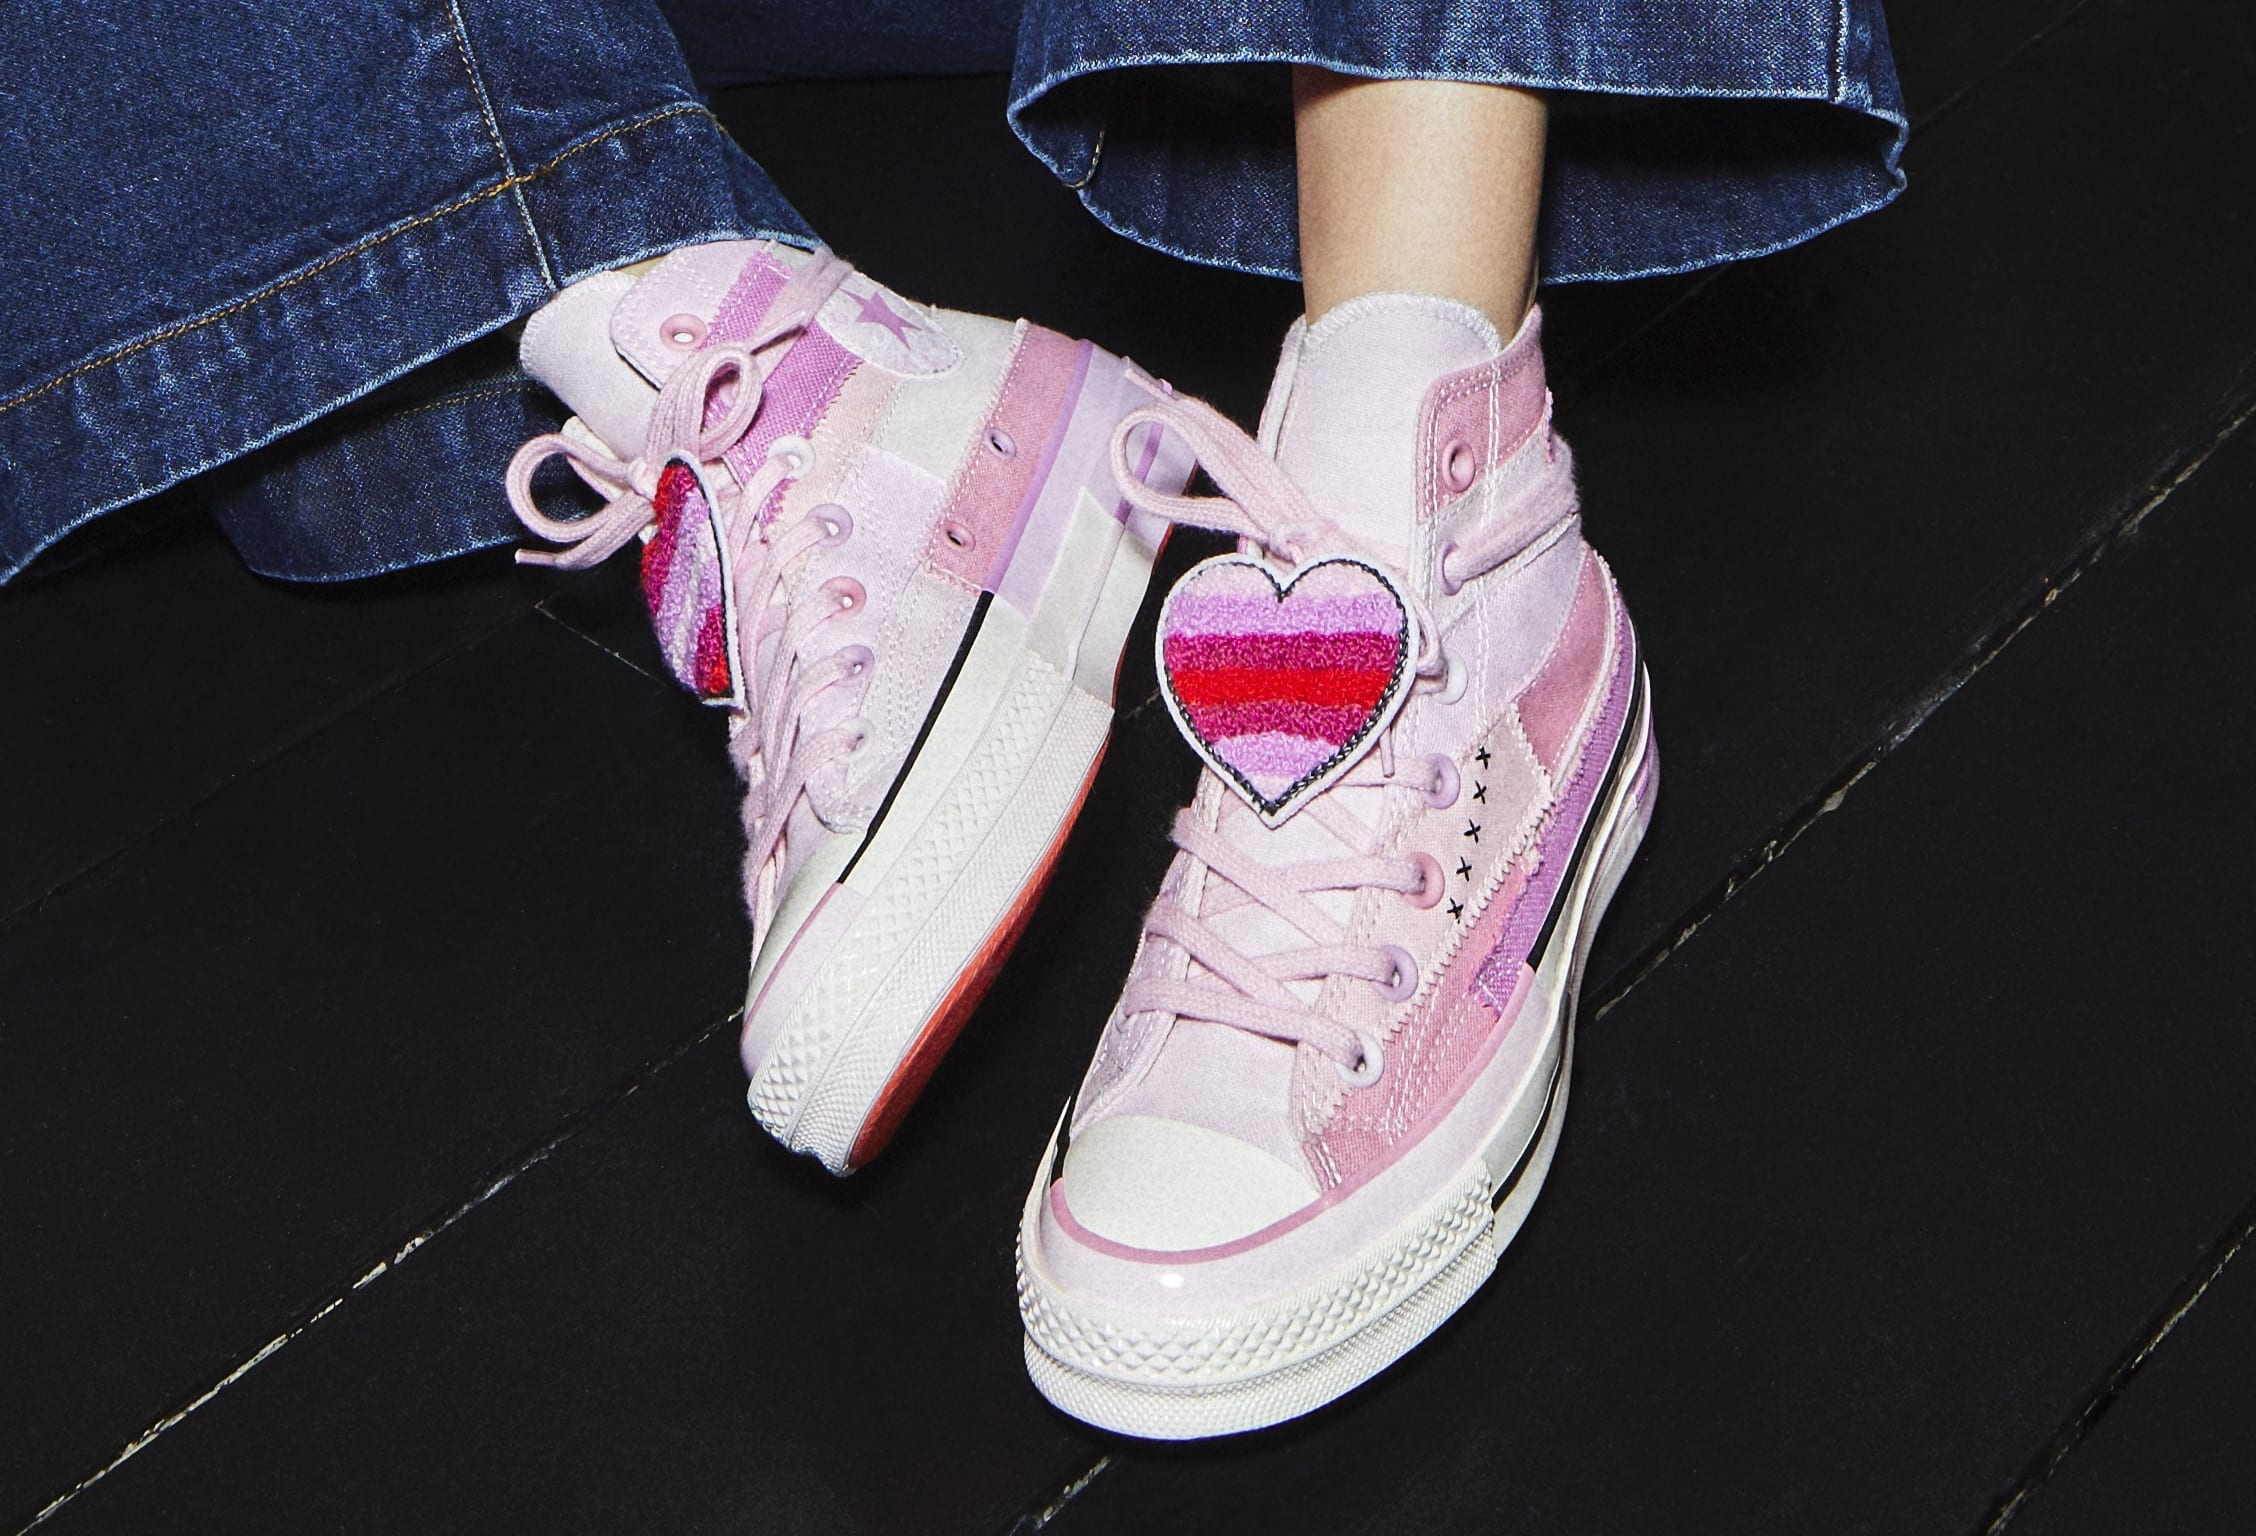 Millie Bobby Brown & Converse Team Up For New Colorful Collab: Photos